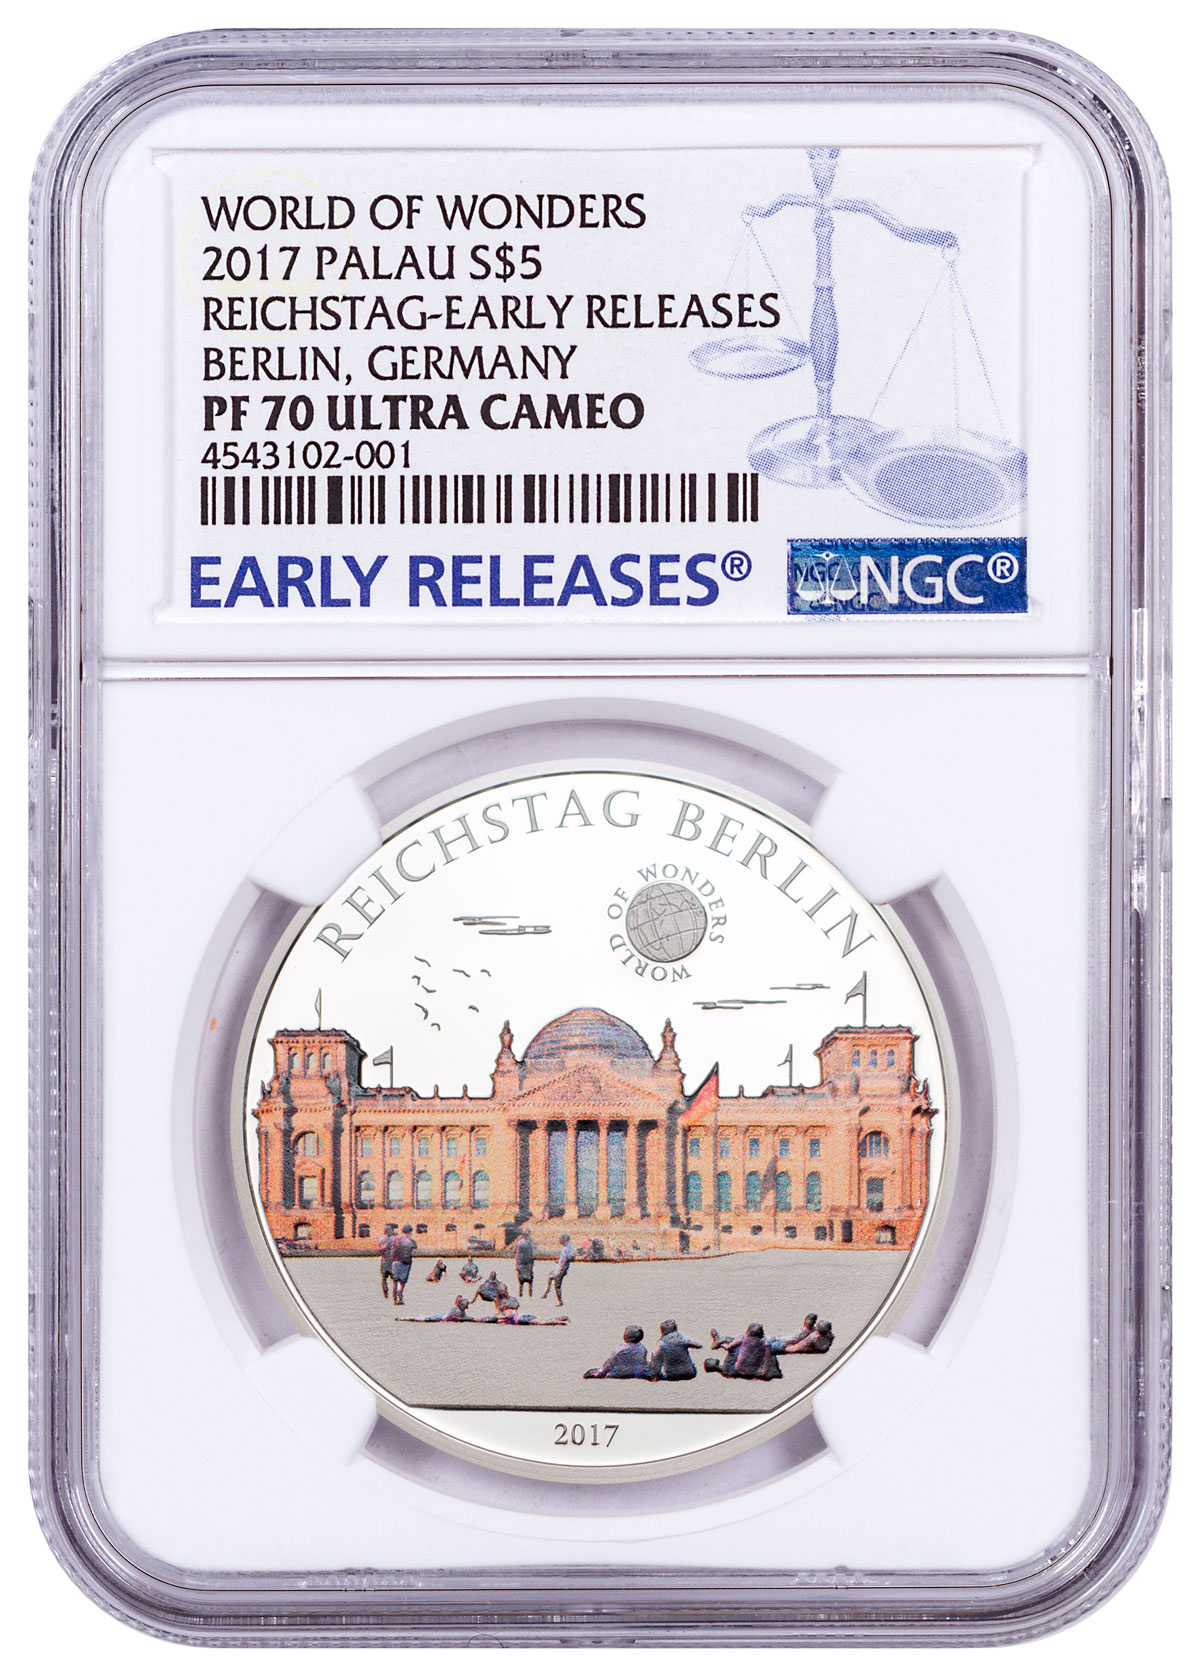 2017 Palau World of Wonders - Reichstag Berlin Silver Colorized Proof $5 Coin NGC PF70 UC ER